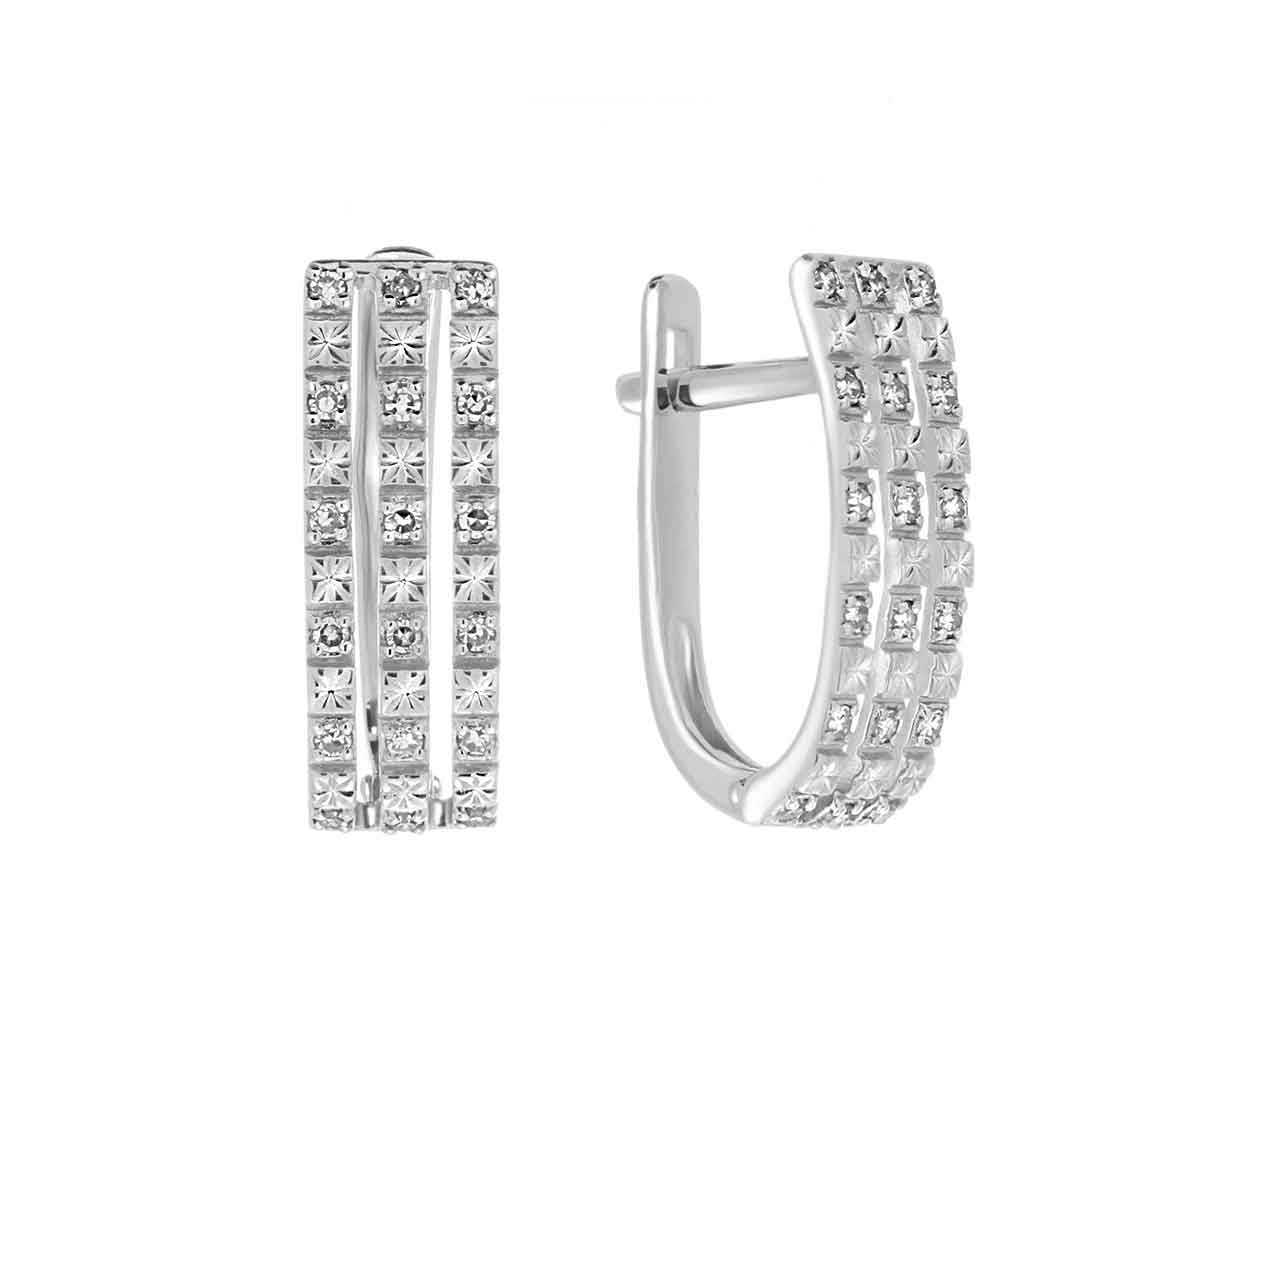 White gold leverback earrings 1